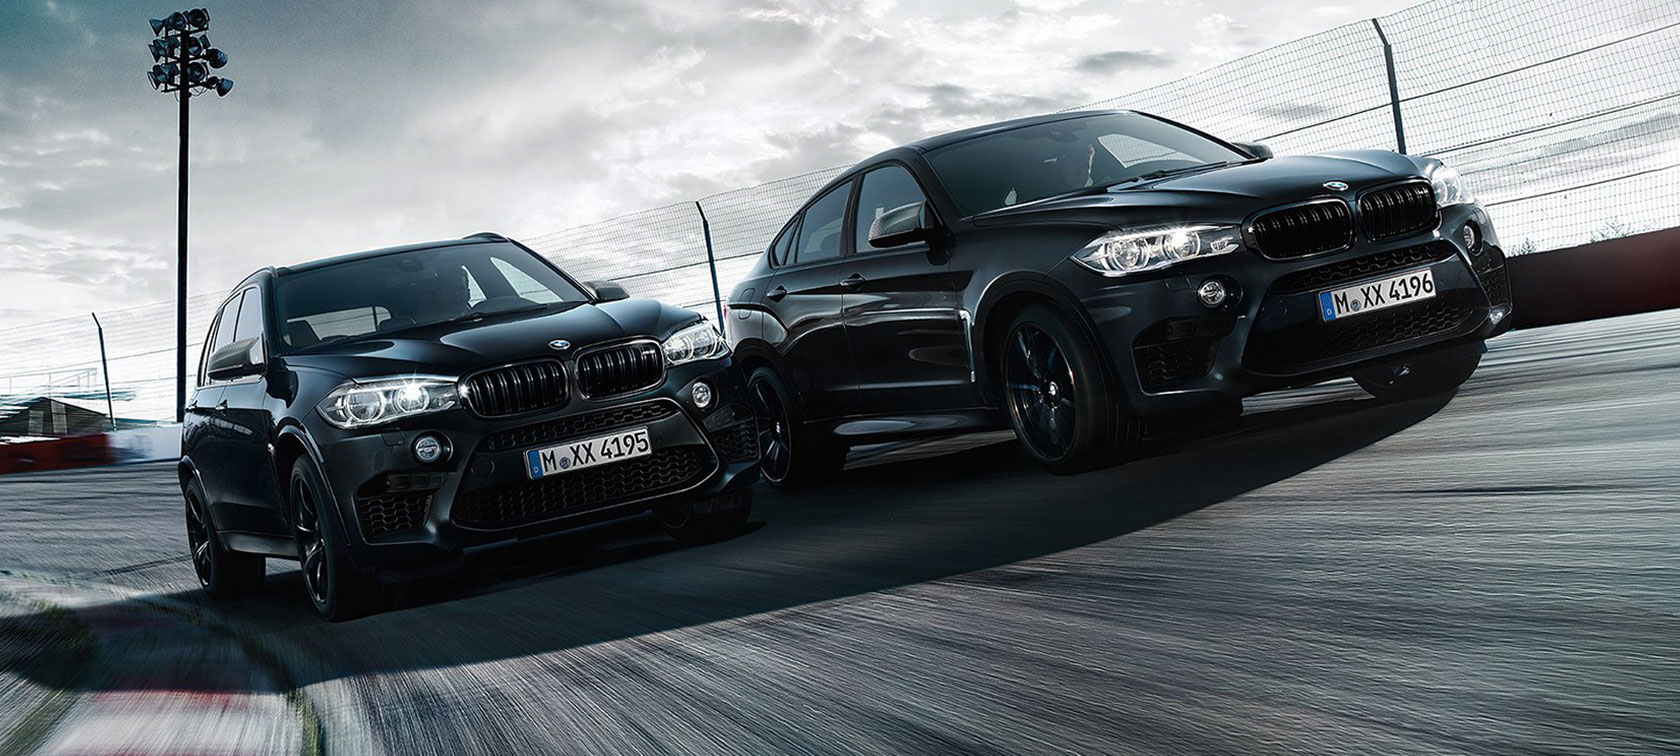 BMW X5M and BMW X6M Black Fire Edition